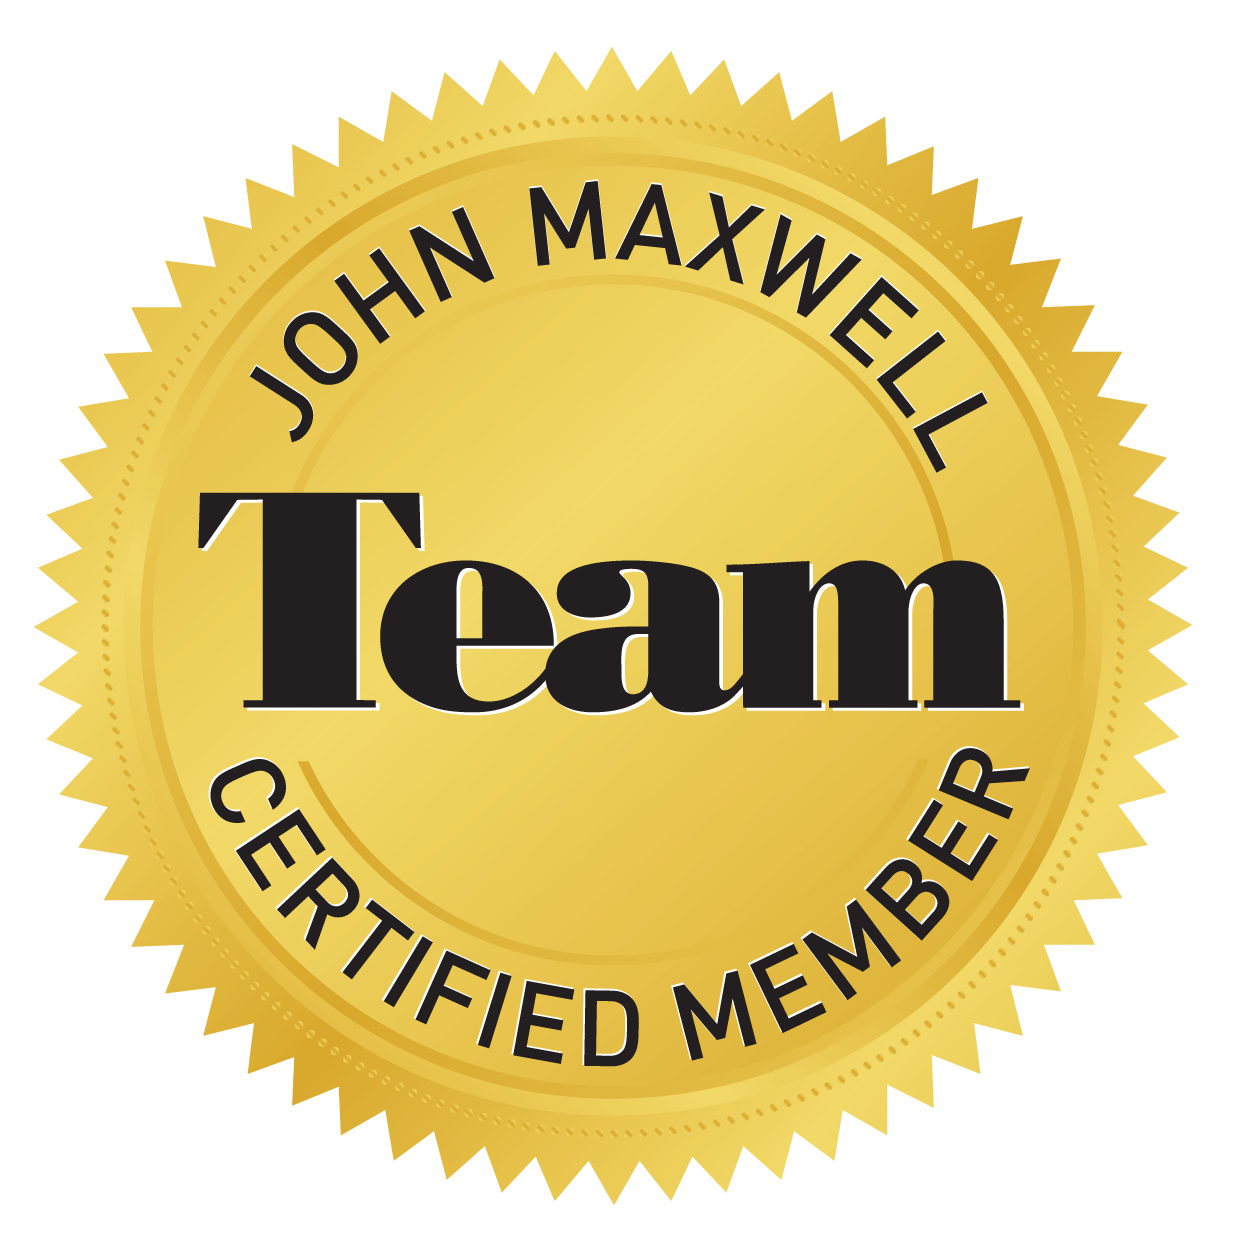 JJ Conway is a John Maxwell Team Certified Speaker